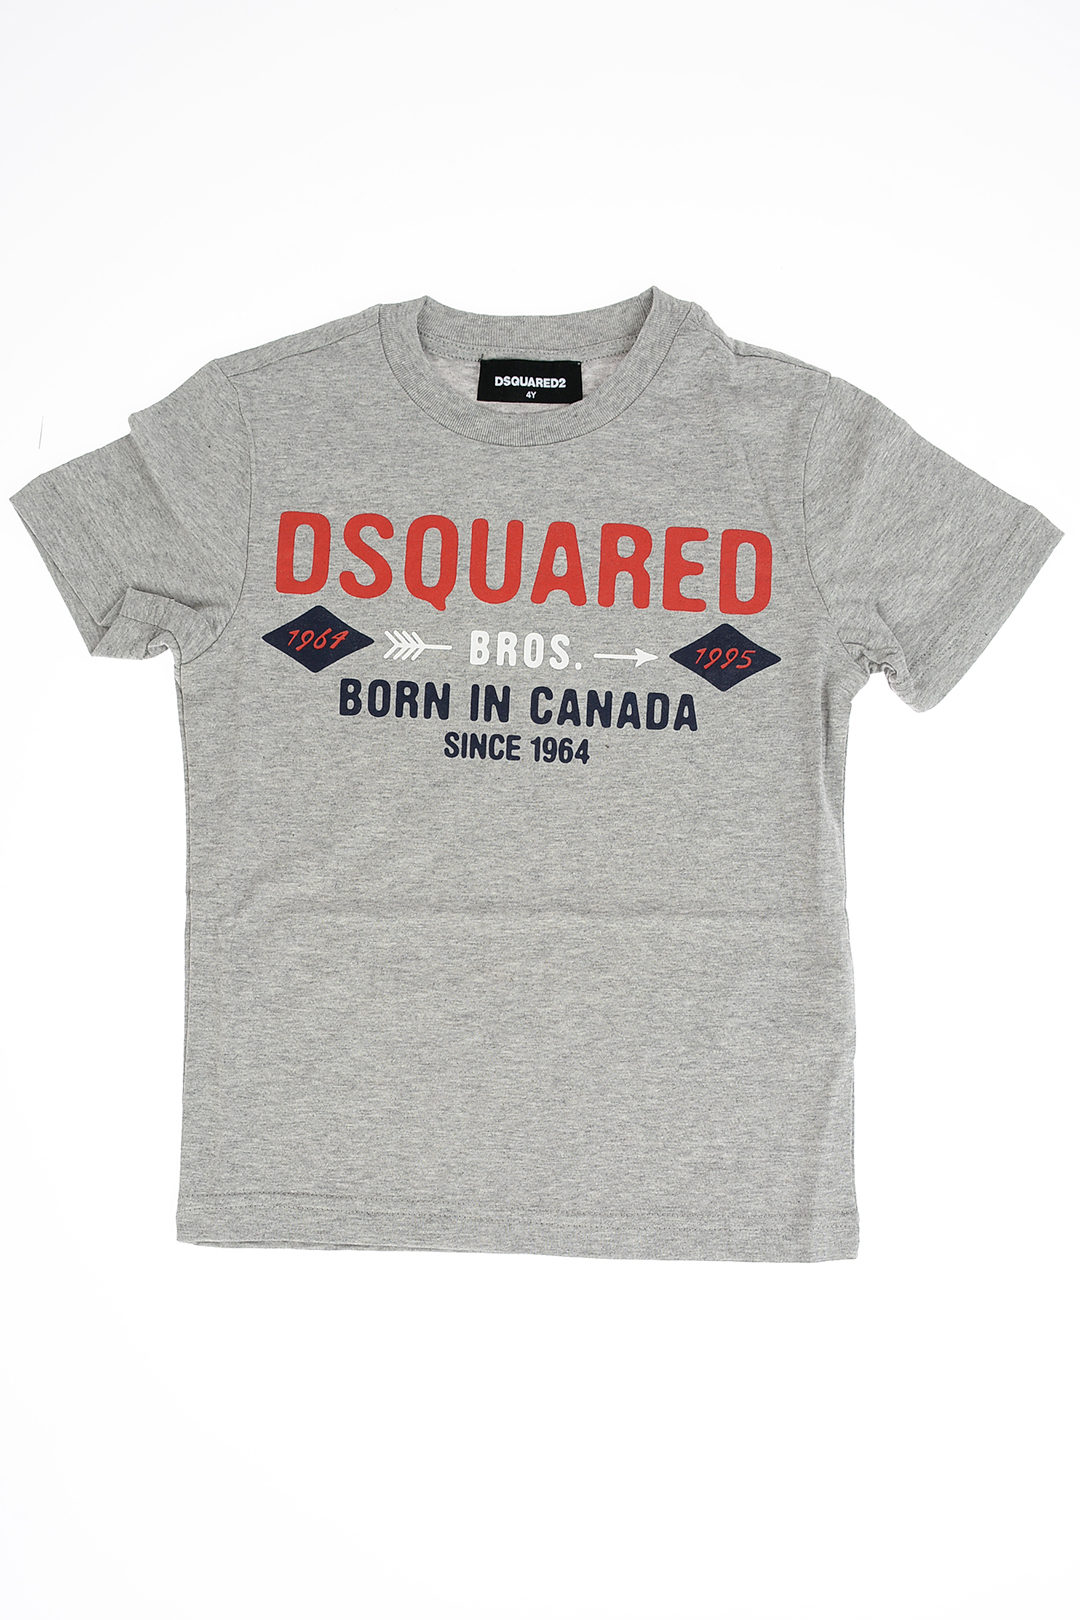 dsquared outlet canada